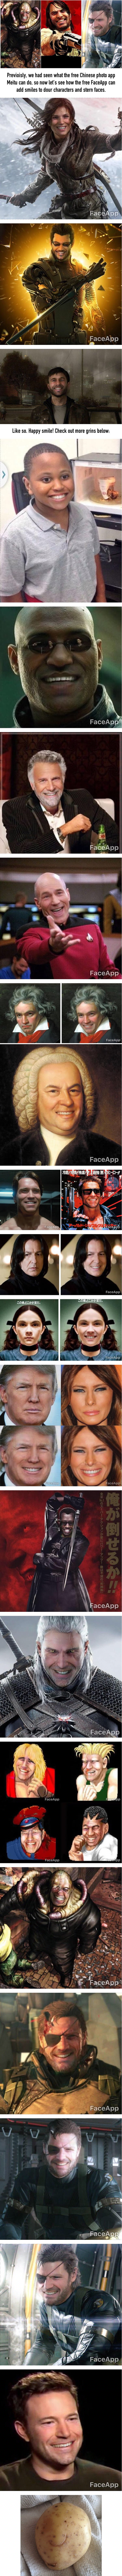 Sad Characters Are Now Happier With FaceApp